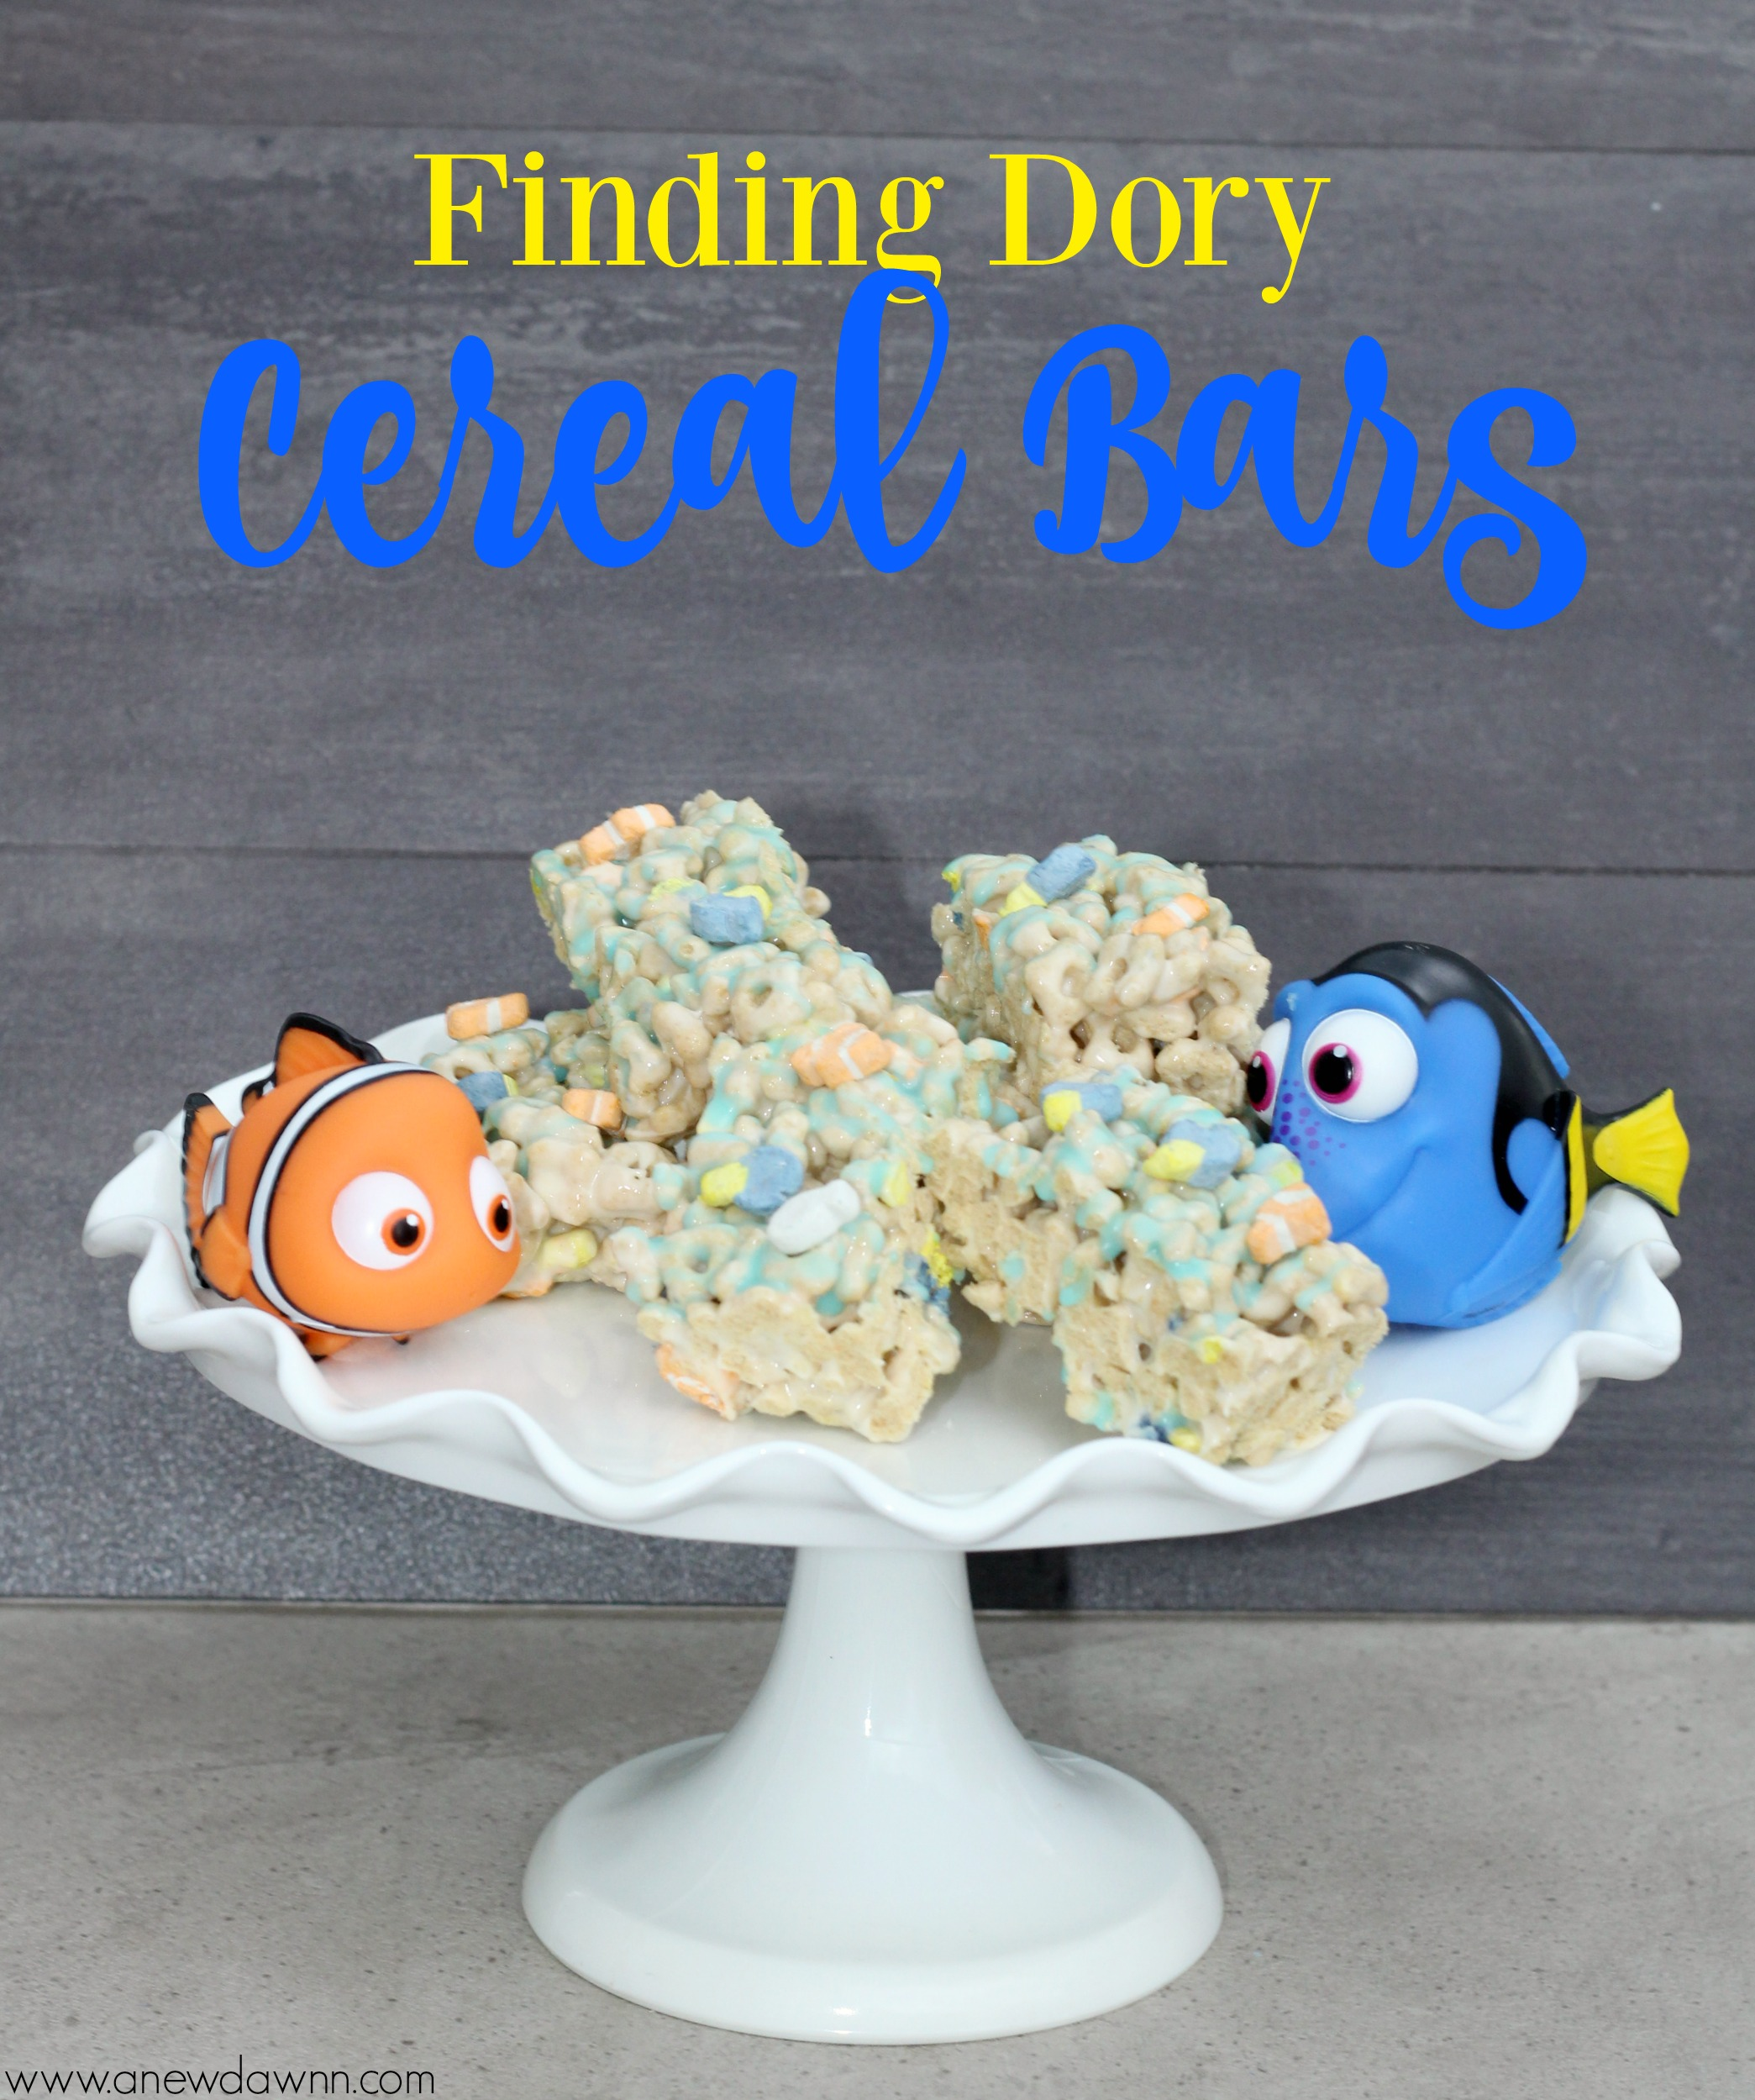 Finding-Dory-Cereal-Bars